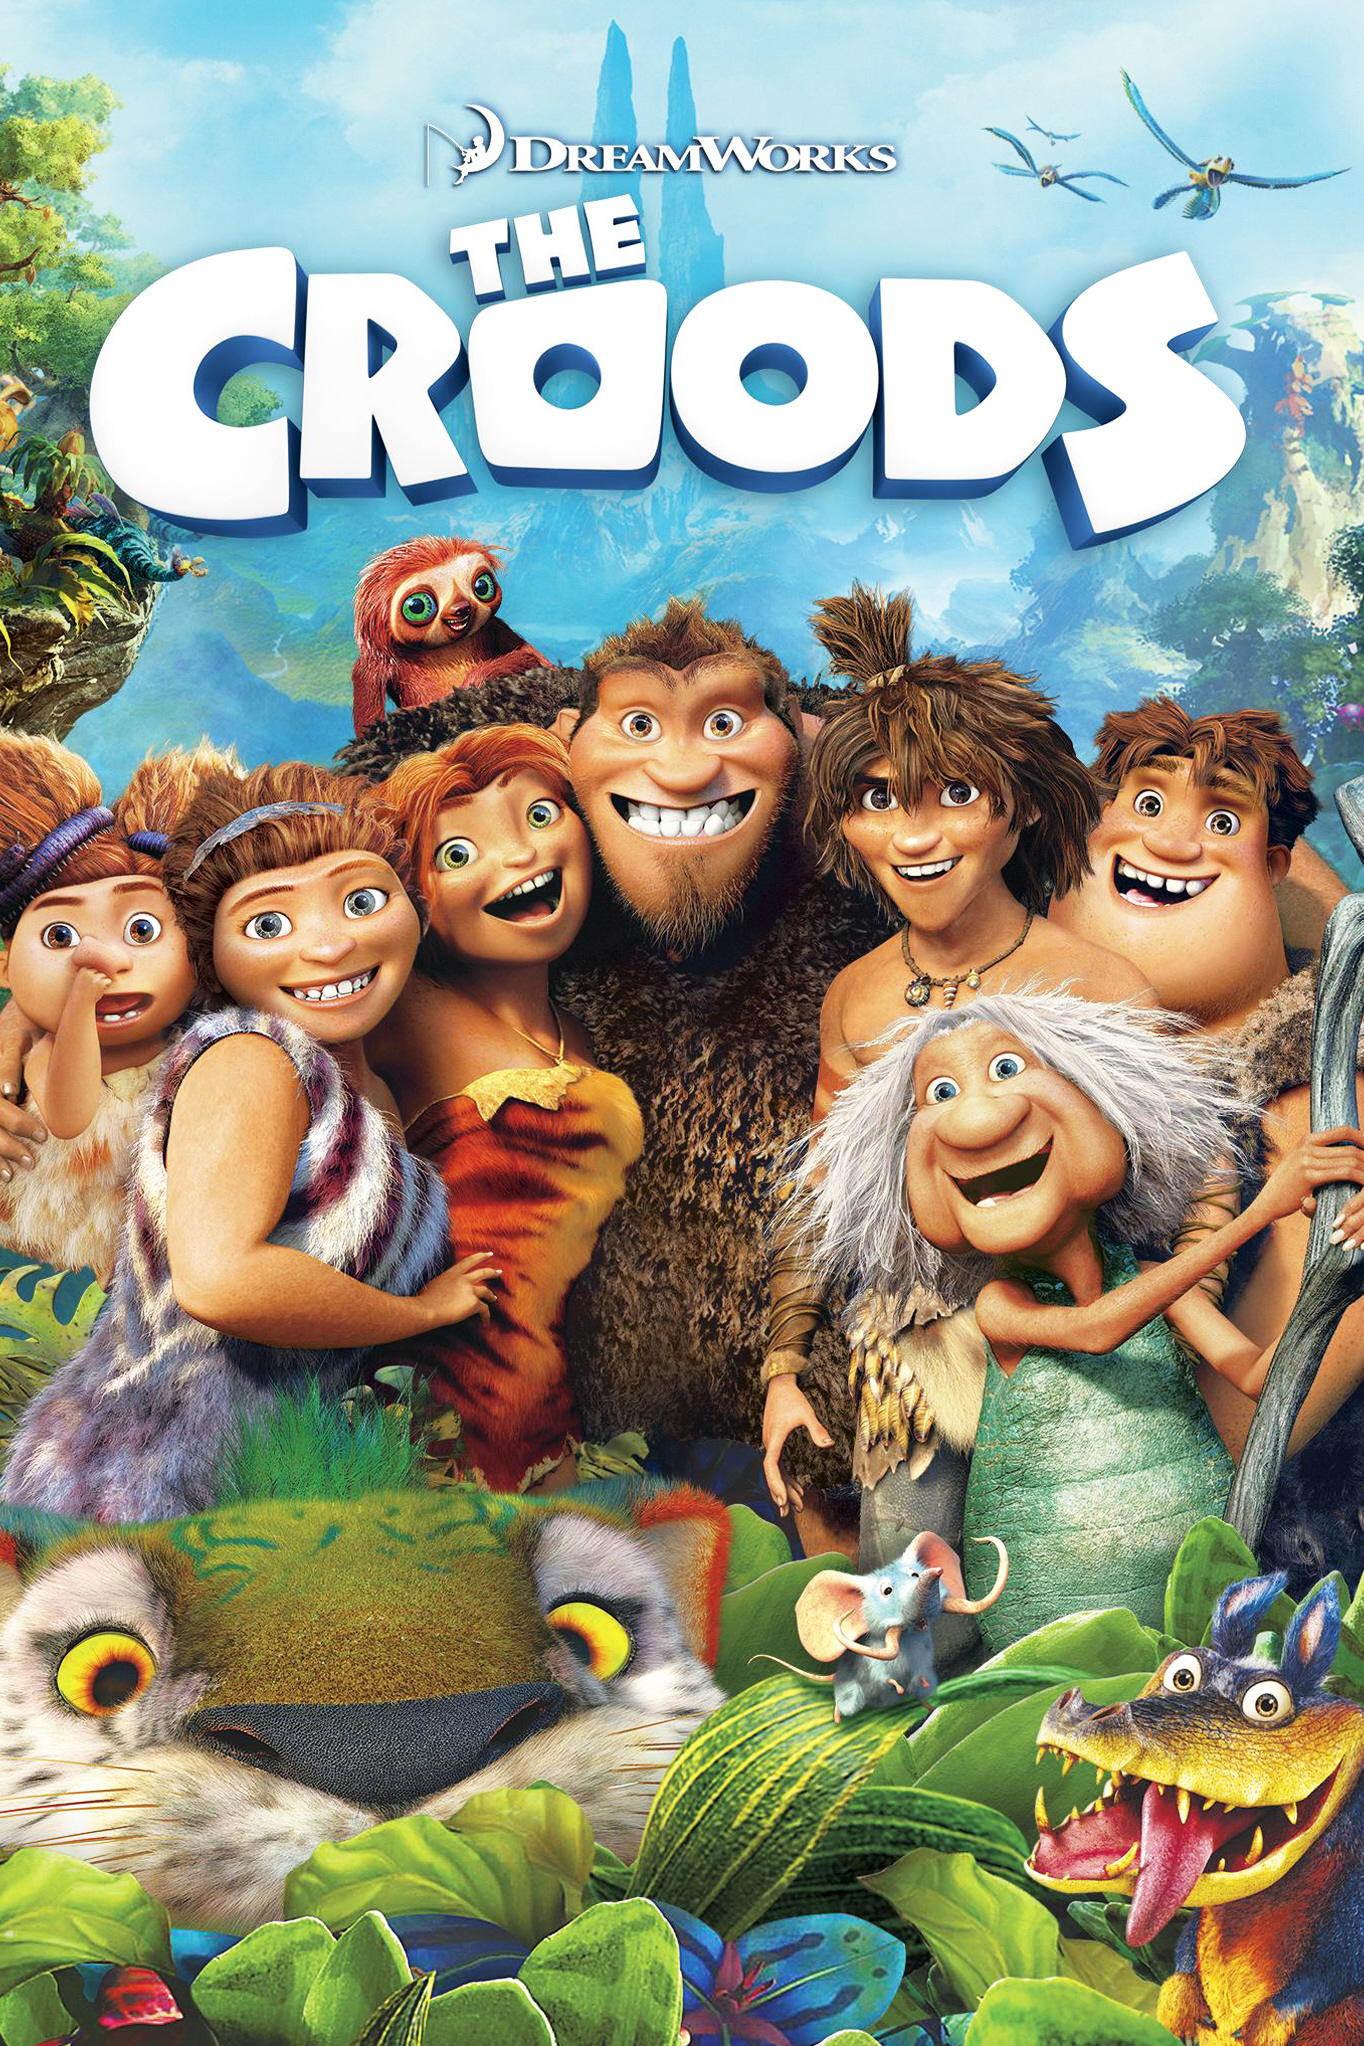 The Croods / 20th Century Fox &#59; Dreamworks Animation &#59; directed by Chris Sanders & Kirk DeMicco &#59; produced by Kristine Belson, Jane Hartwe